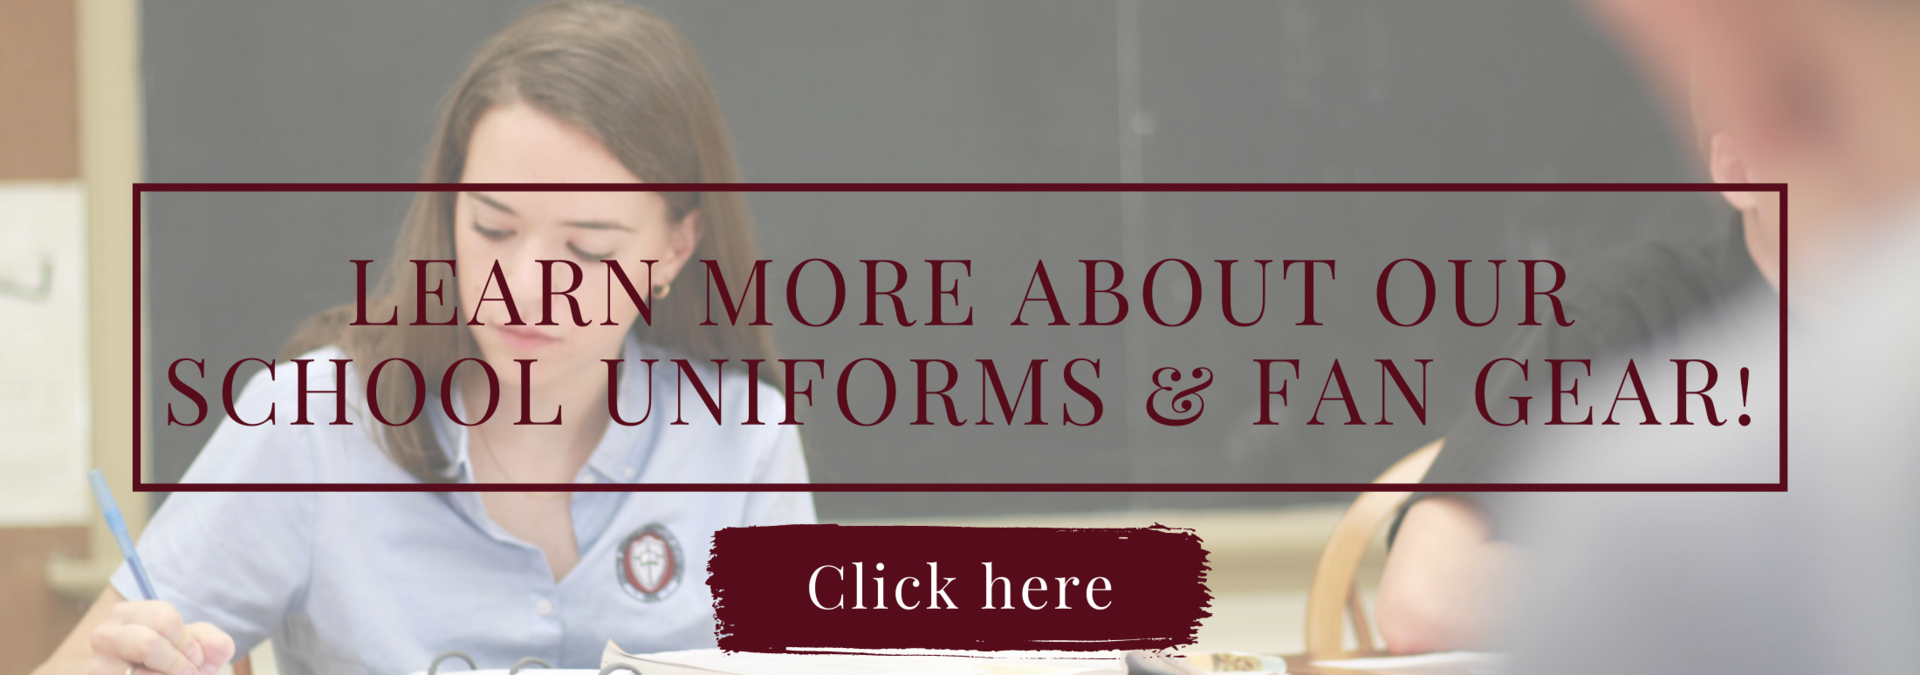 Learn more about our school uniforms and fan gear!